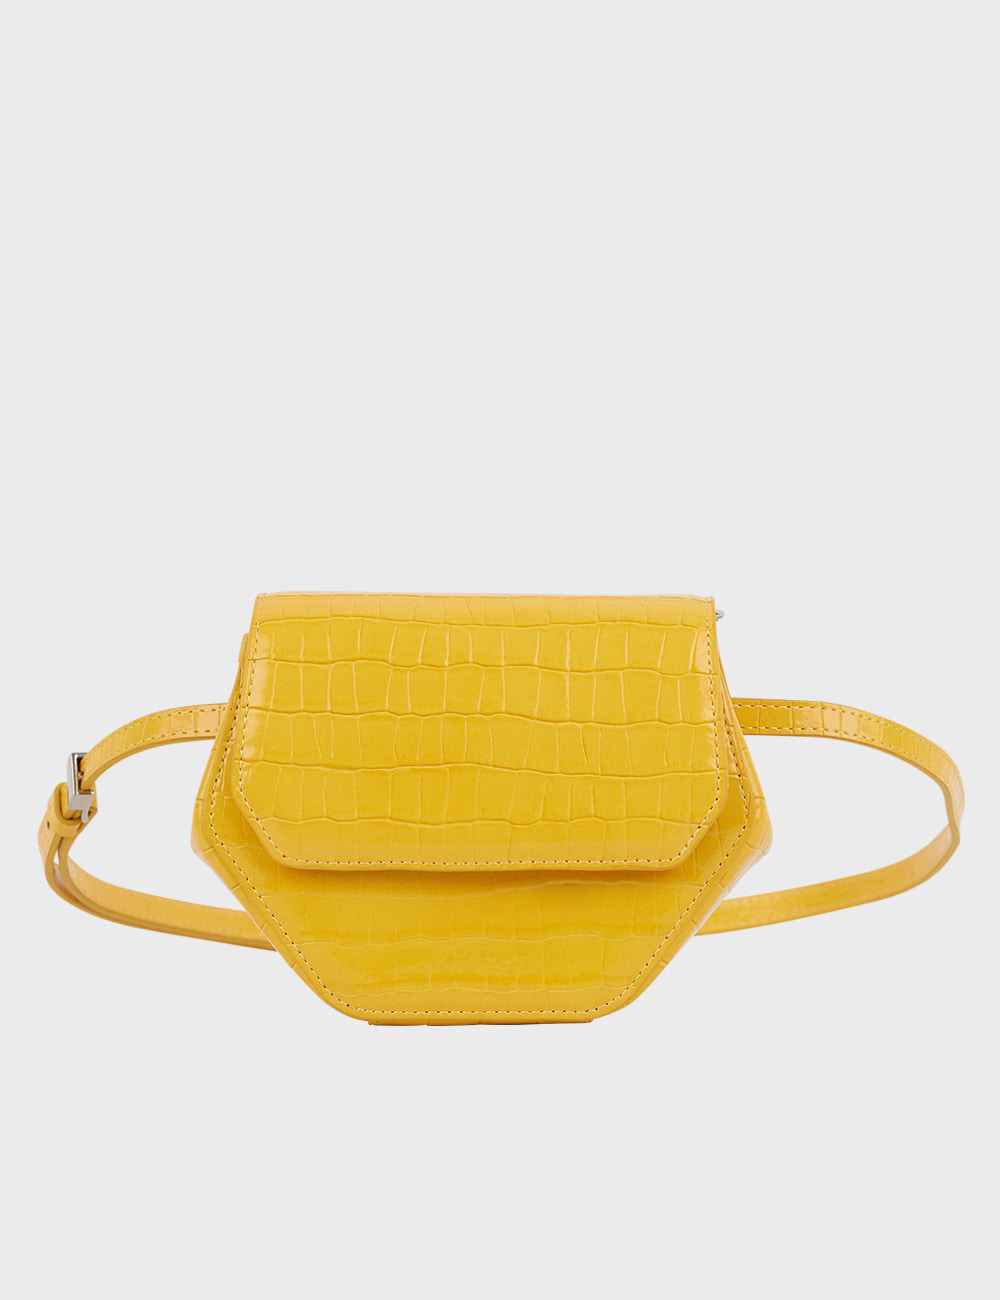 MAISON246,[퍼/메탈체인증정]246 MAGOT SMALL CROCODILE PENNY BAG - YELLOW,No.246